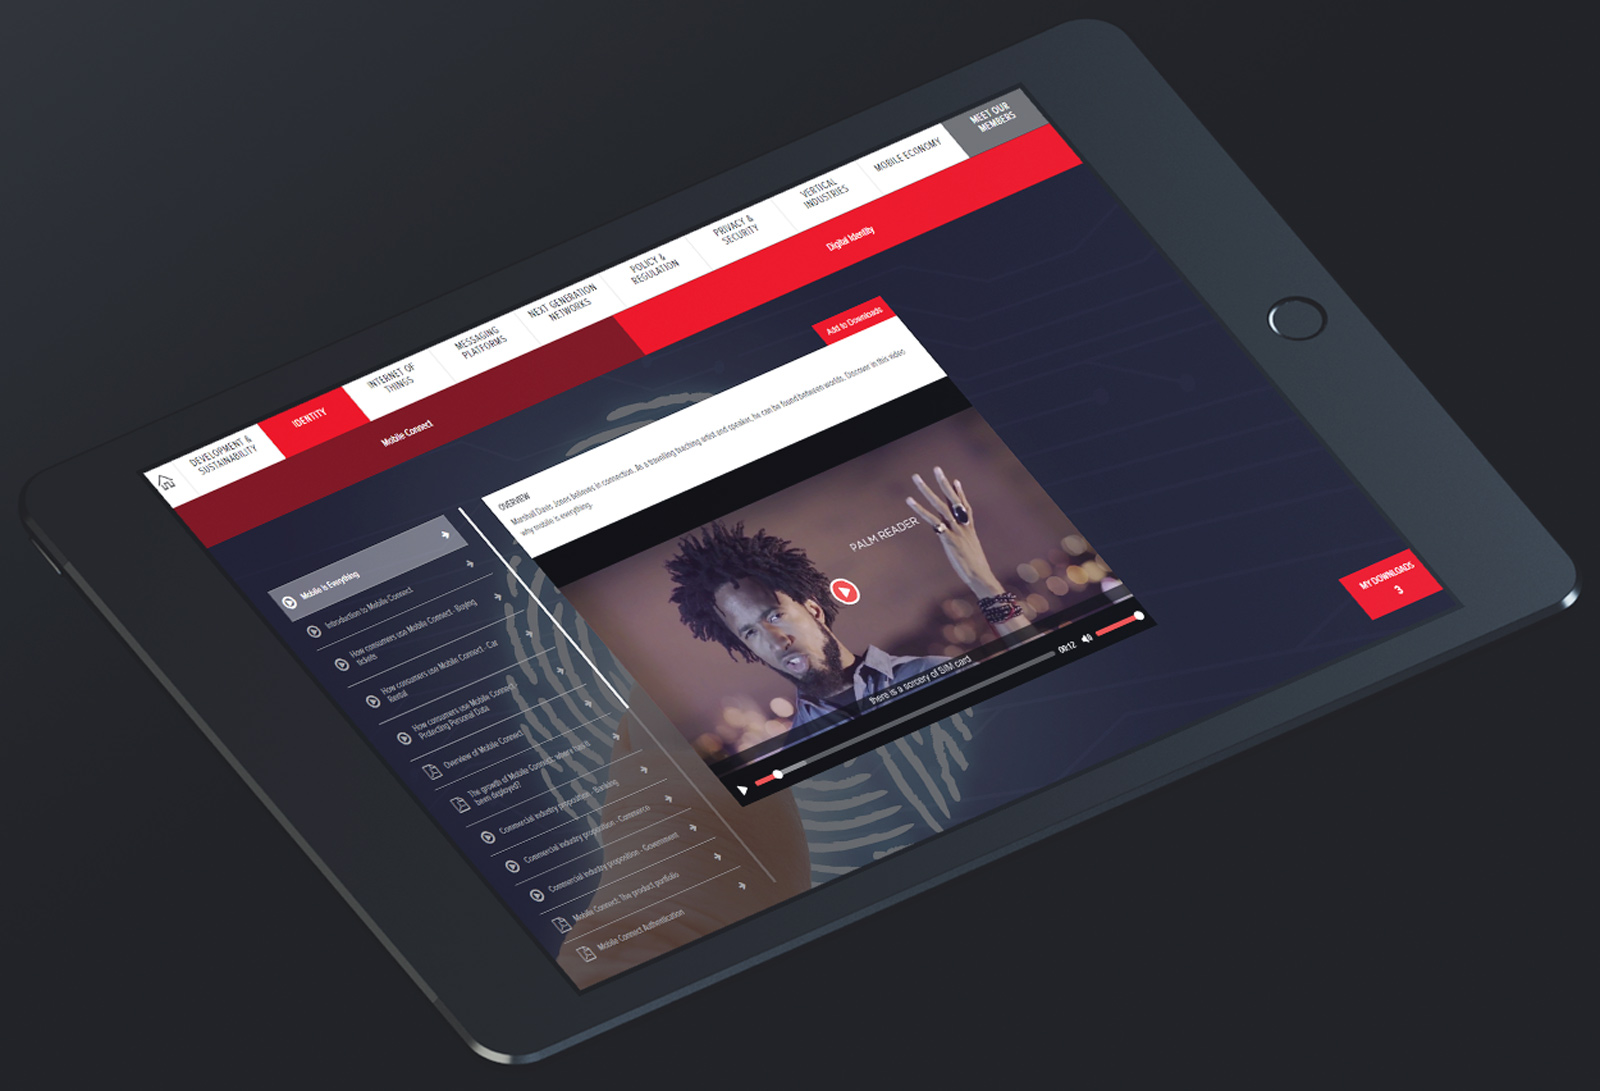 Black iPad displaying interactive touchscreen sales enablement tool